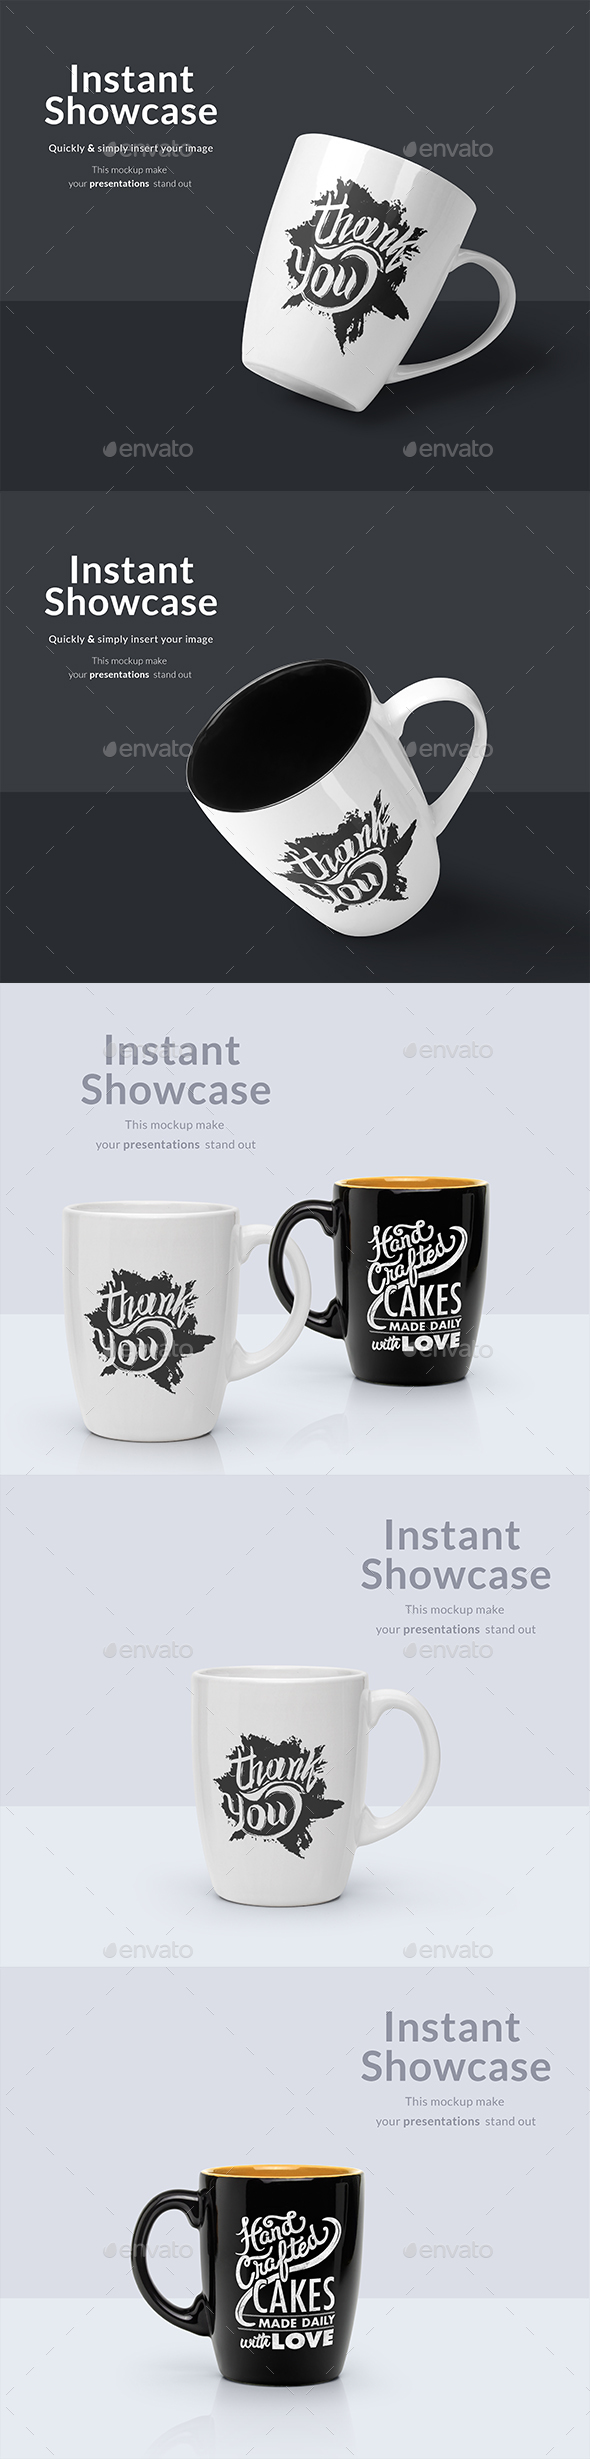 Mug Mockup - Product Mock-Ups Graphics